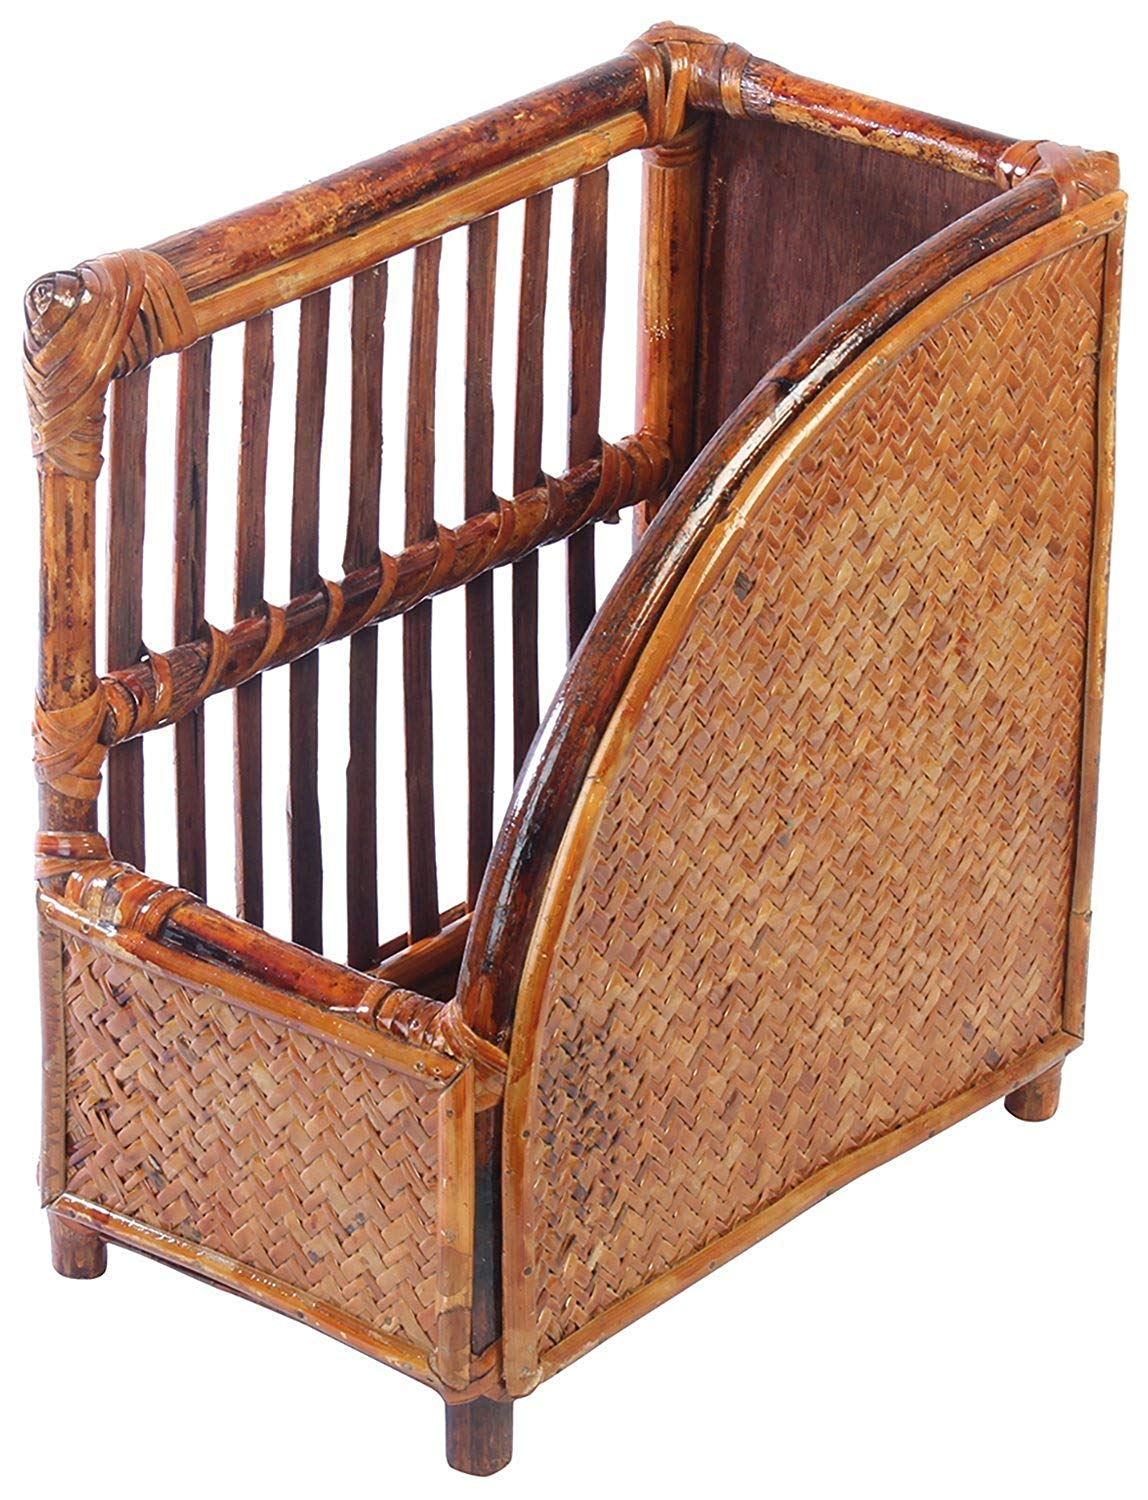 IRA Brown Bookcase Made of Rattan & Wicker - IRA Furniture